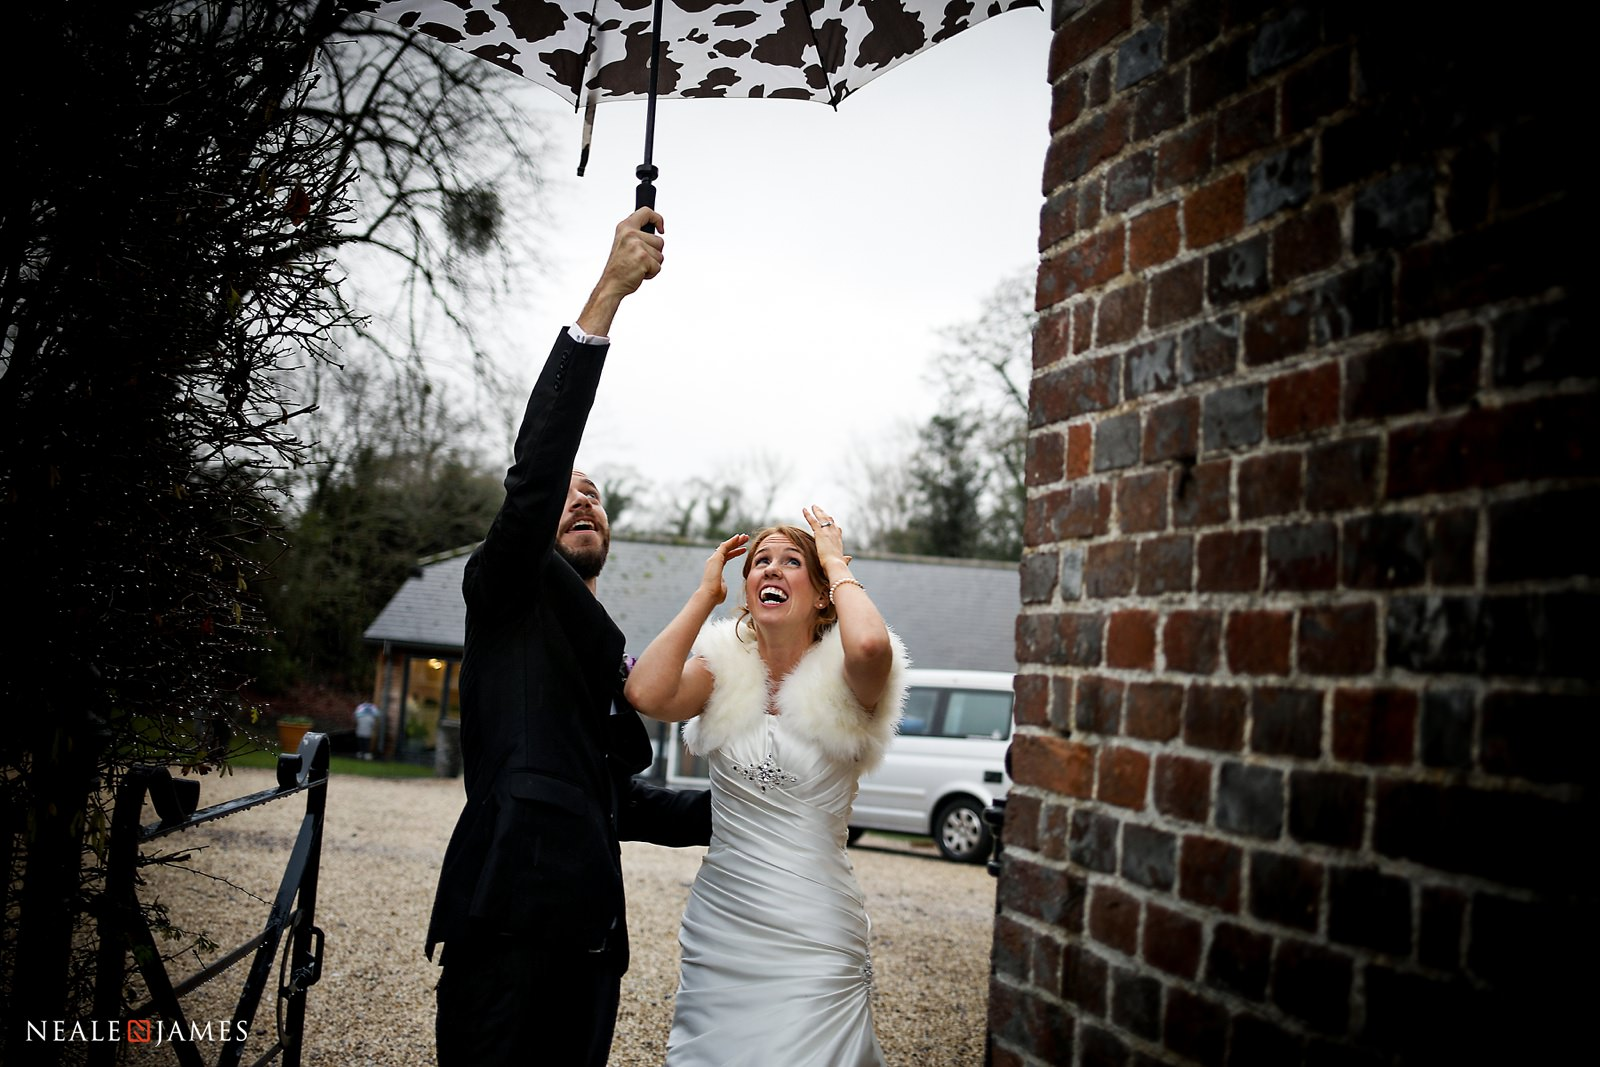 A tricky umbrella manoeuvre is required at Wasing Park as bride and groom head out for their portraits